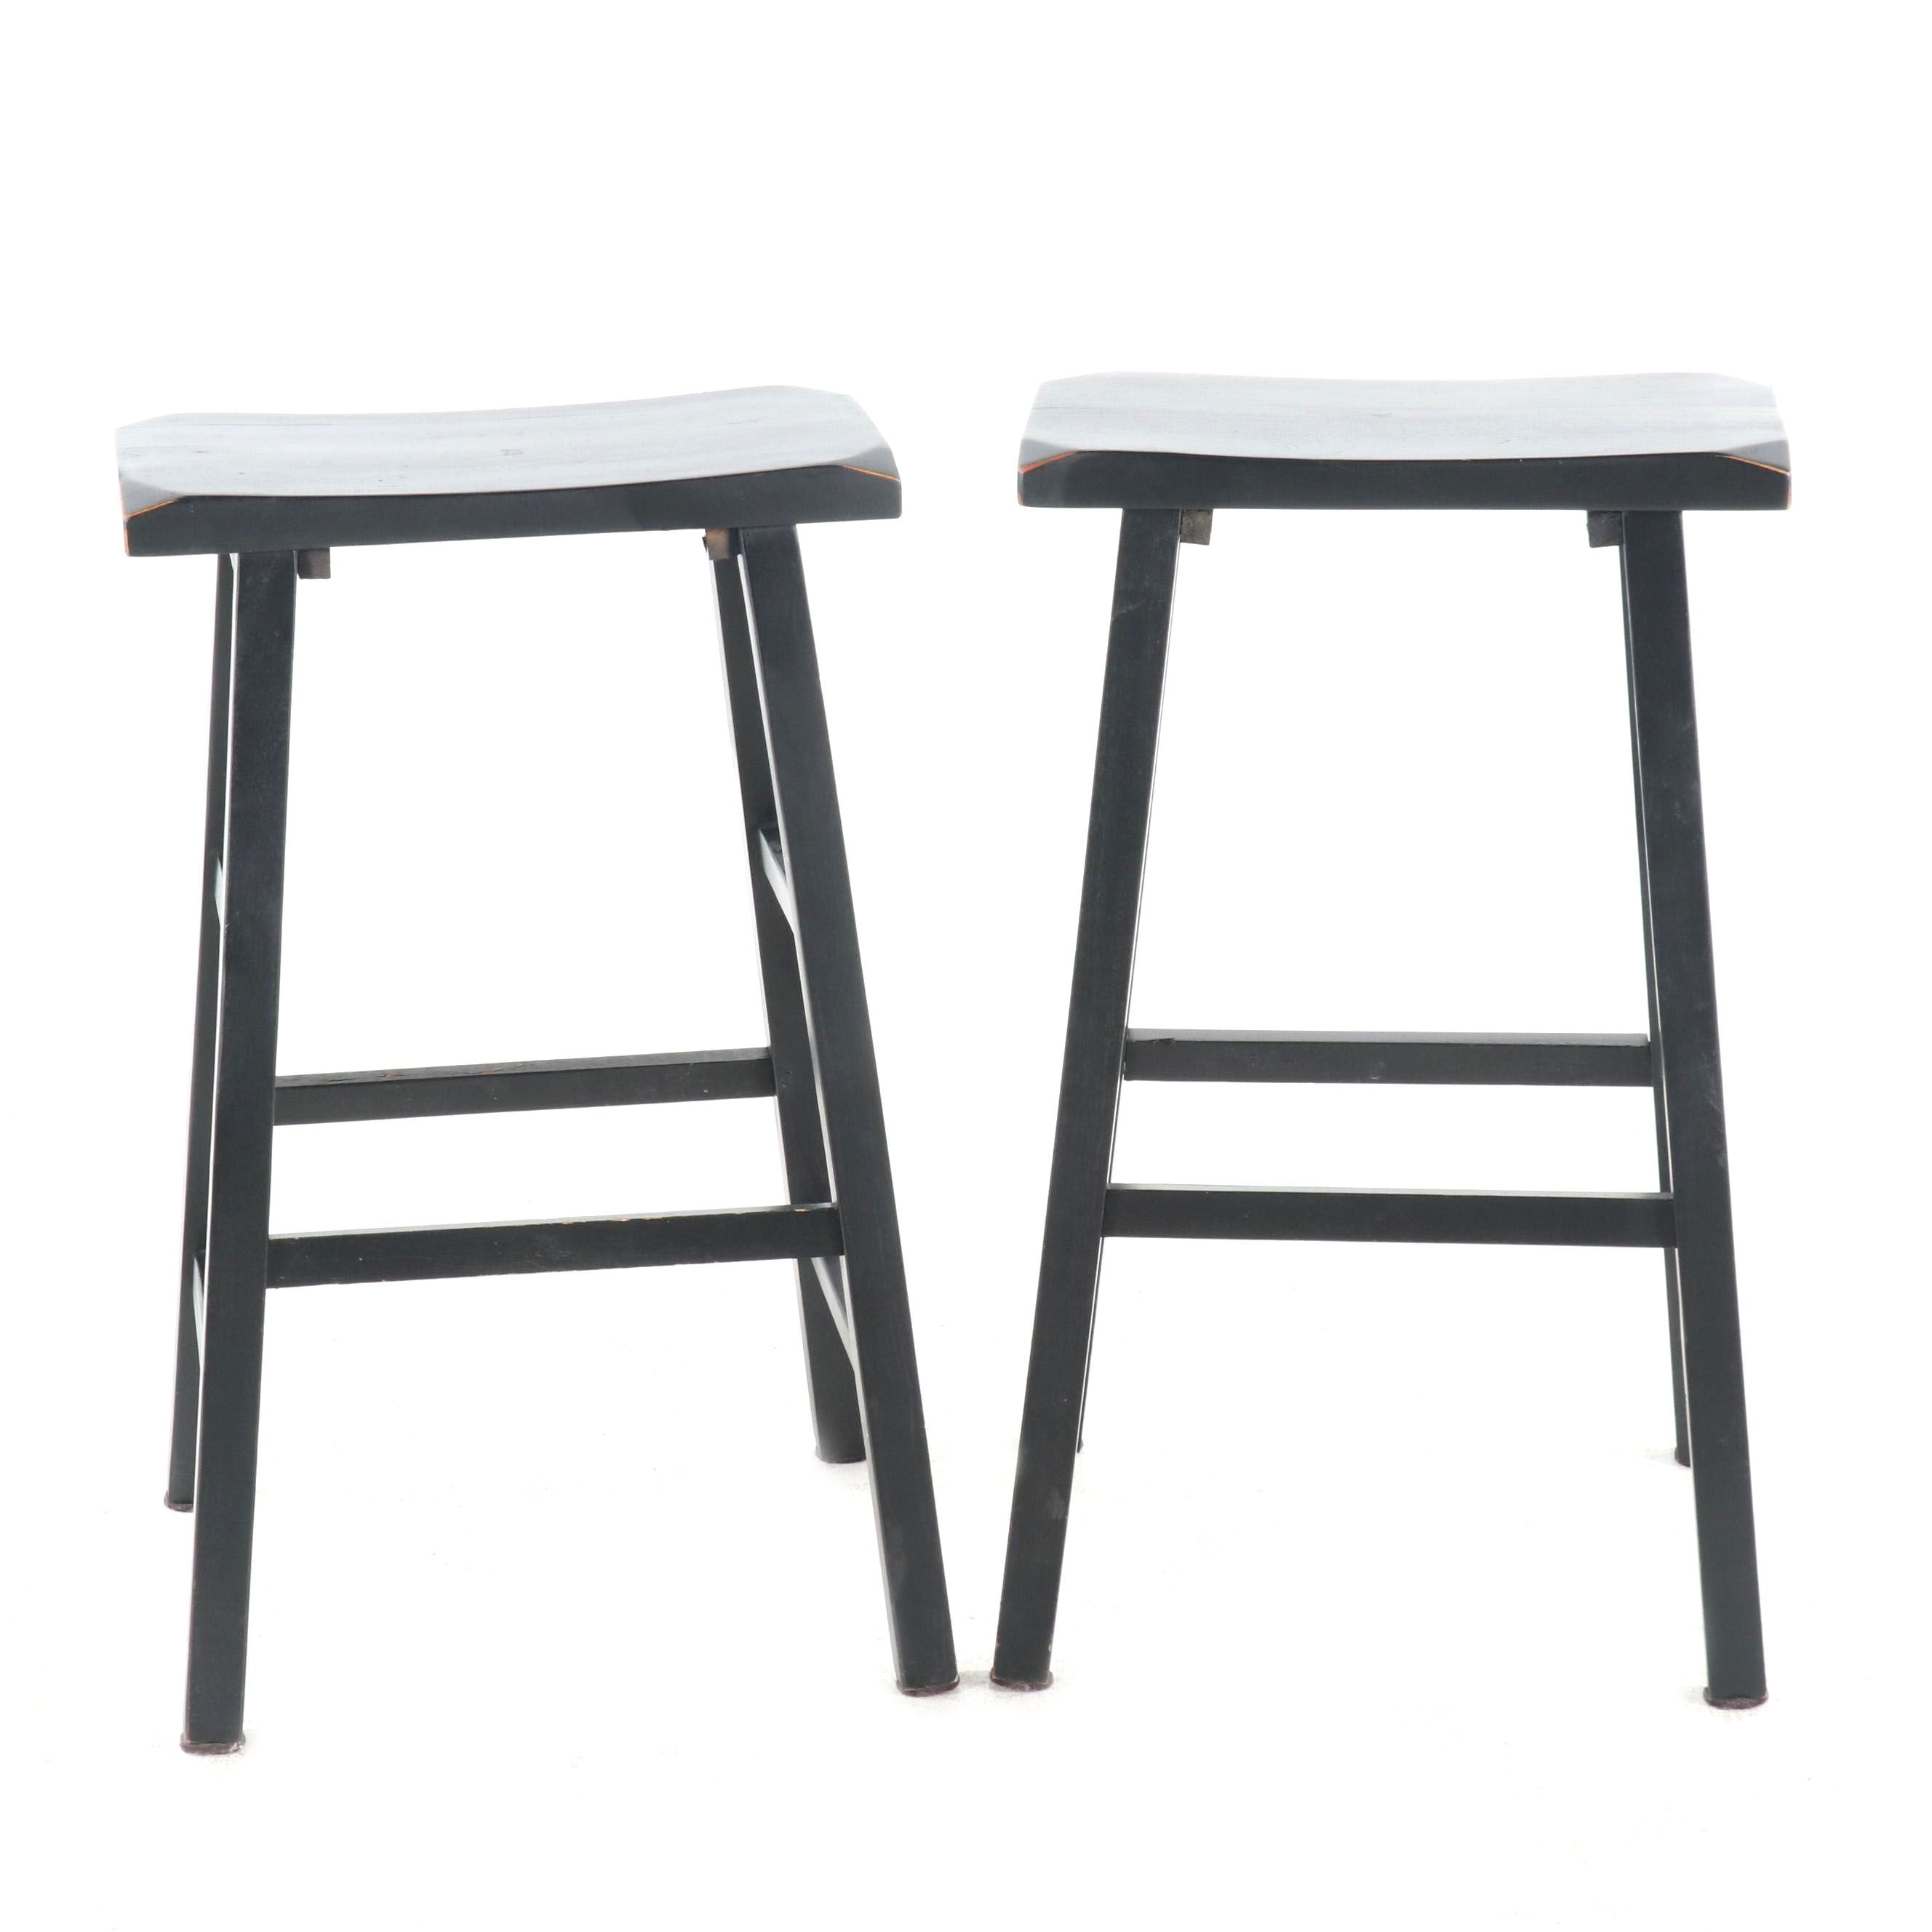 Painted Wooden Bar Stools, Contemporary